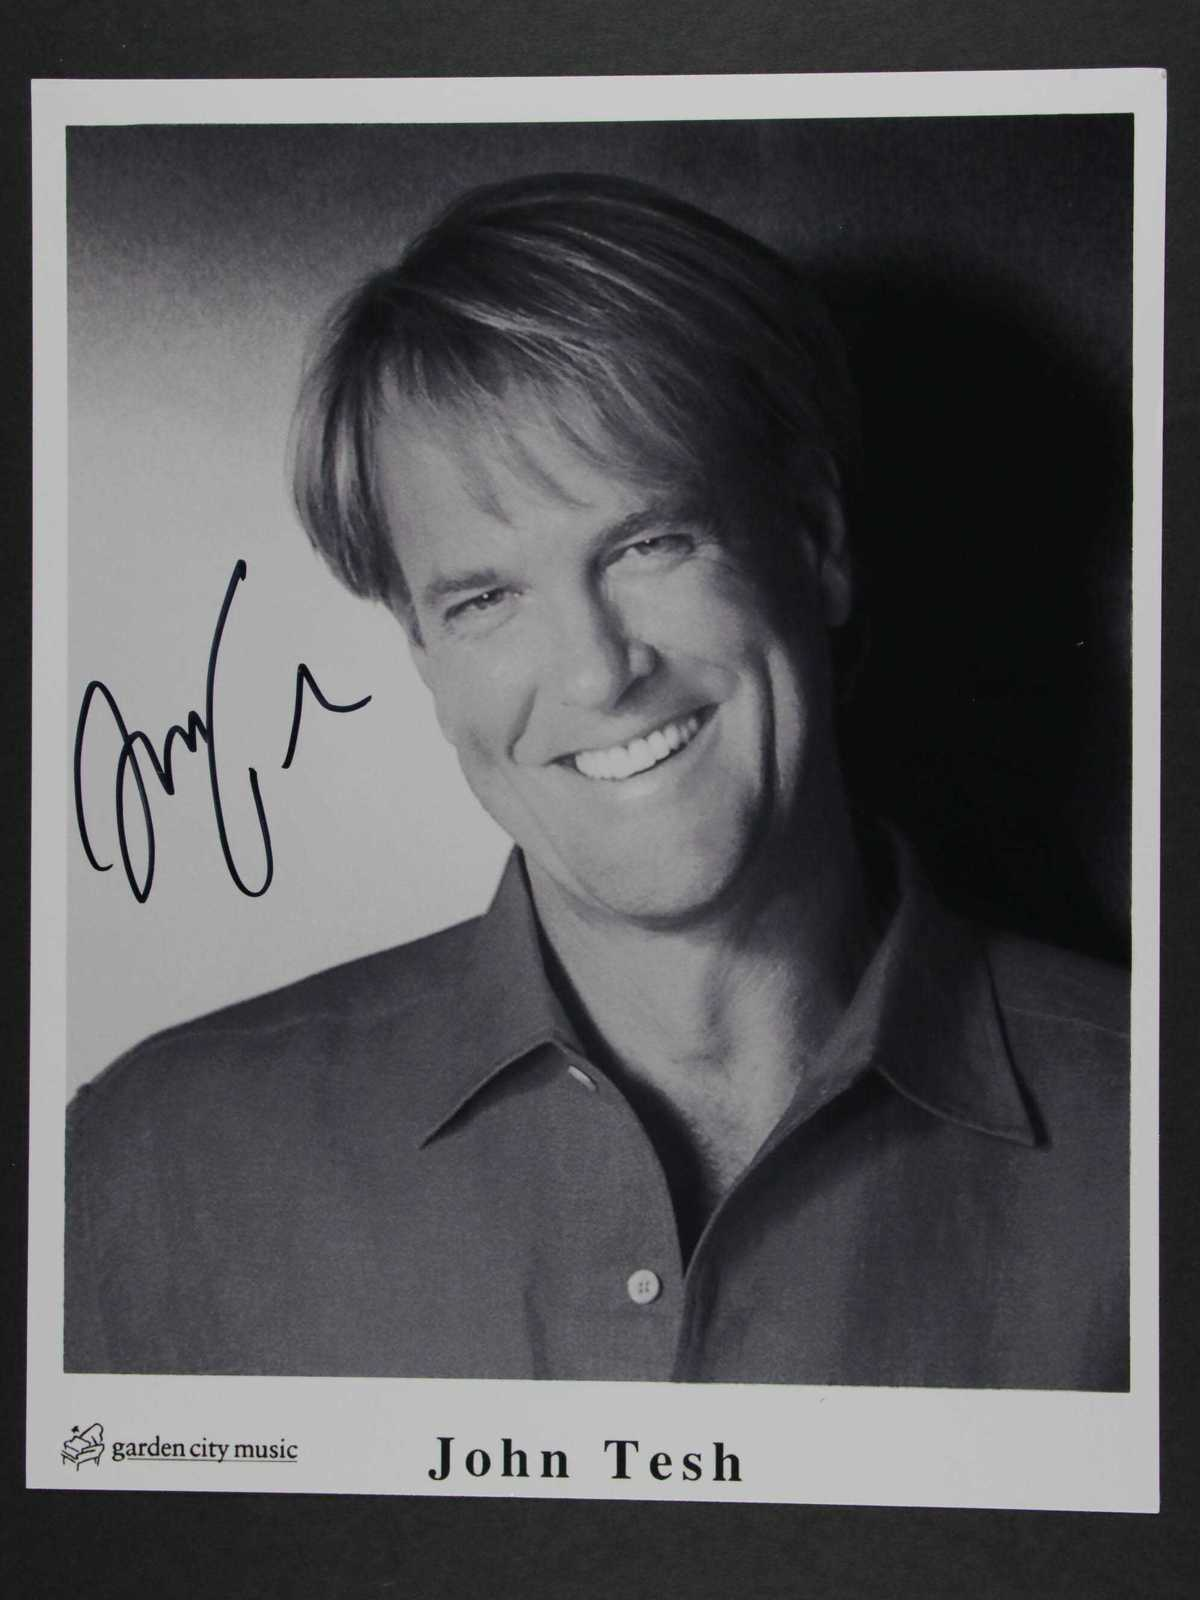 Primary image for John Tesh Signed Autographed Glossy 8x10 Photo